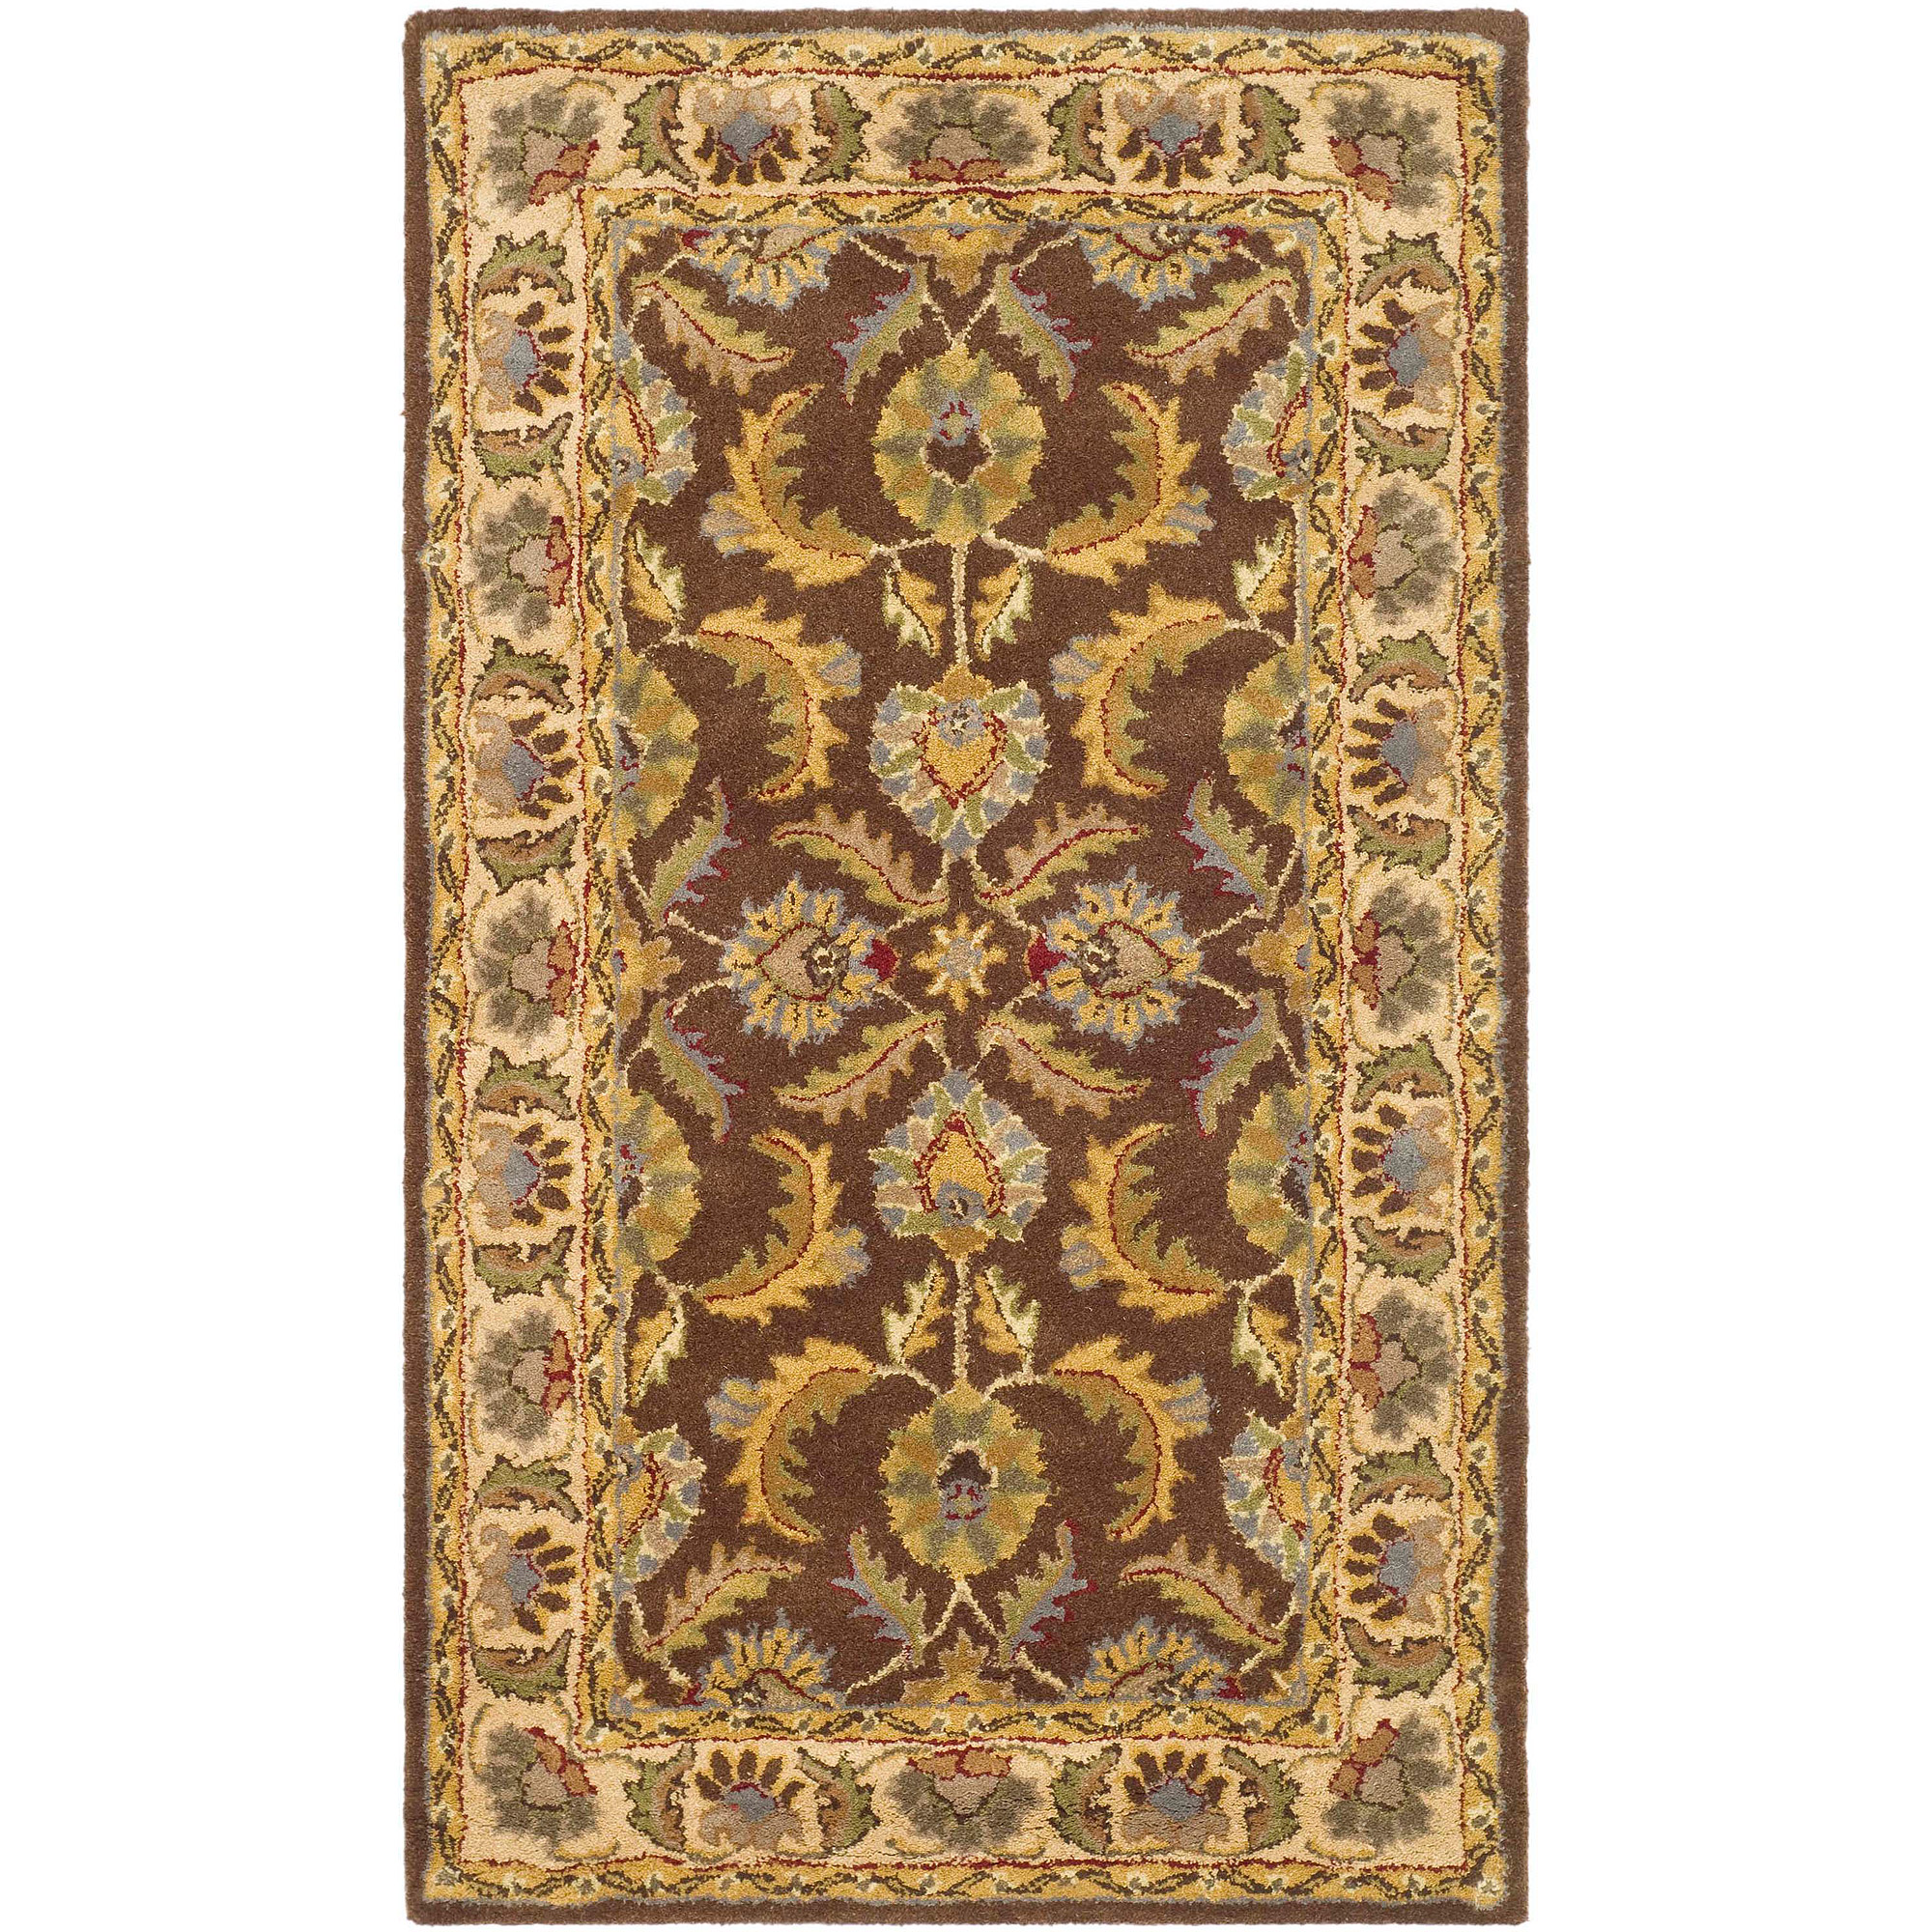 Safavieh Heritage Finnegan Hand-Tufted Wool Area Rug